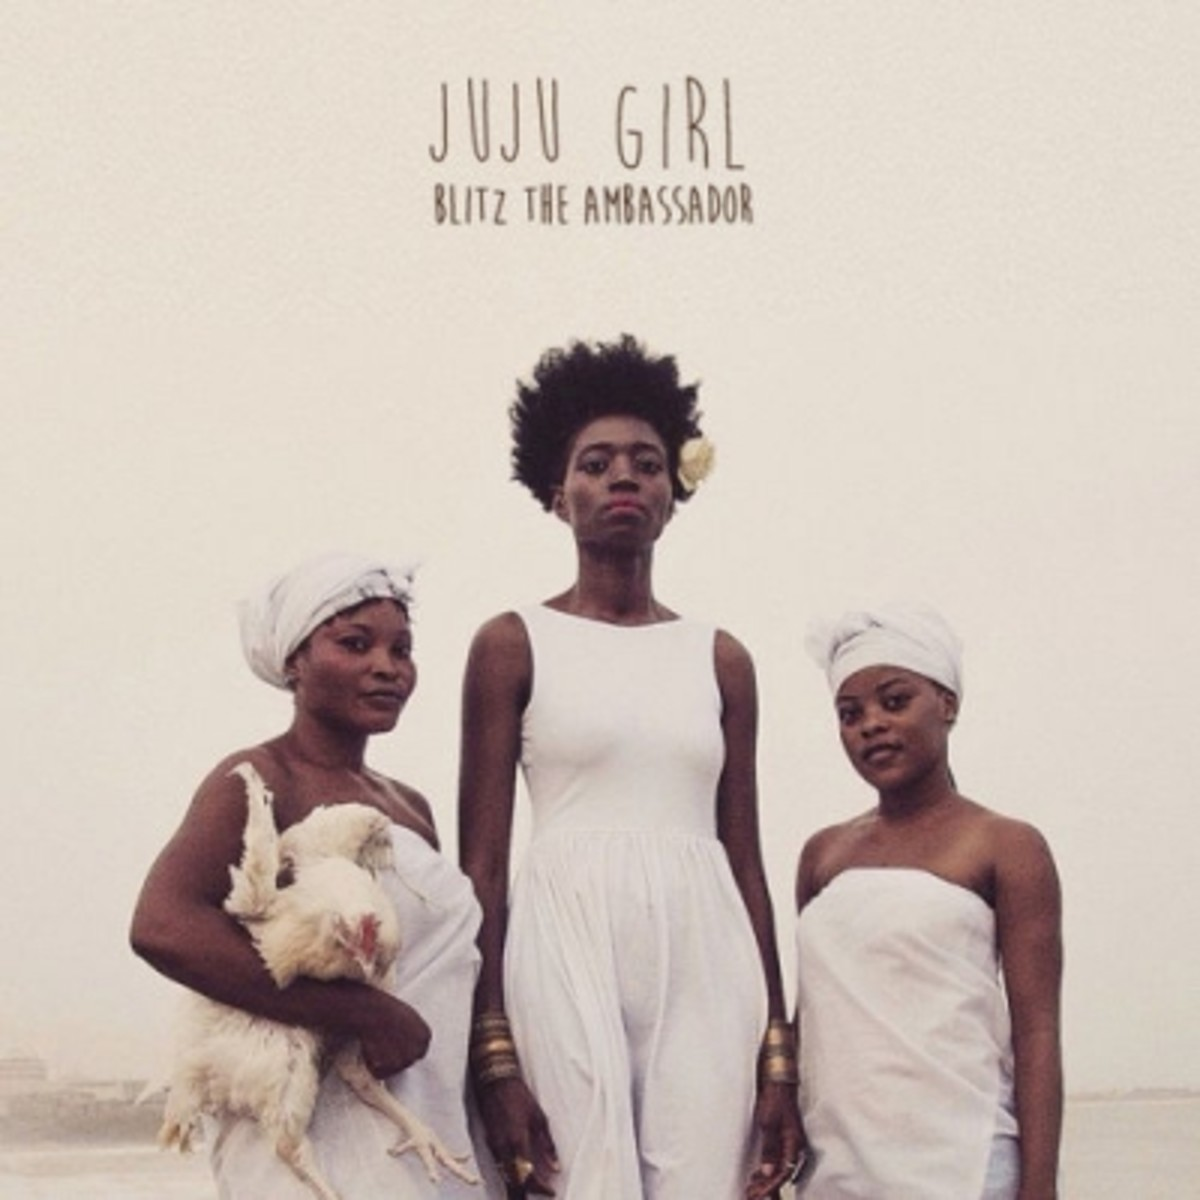 blitz-the-ambassador-juju-girl.jpg